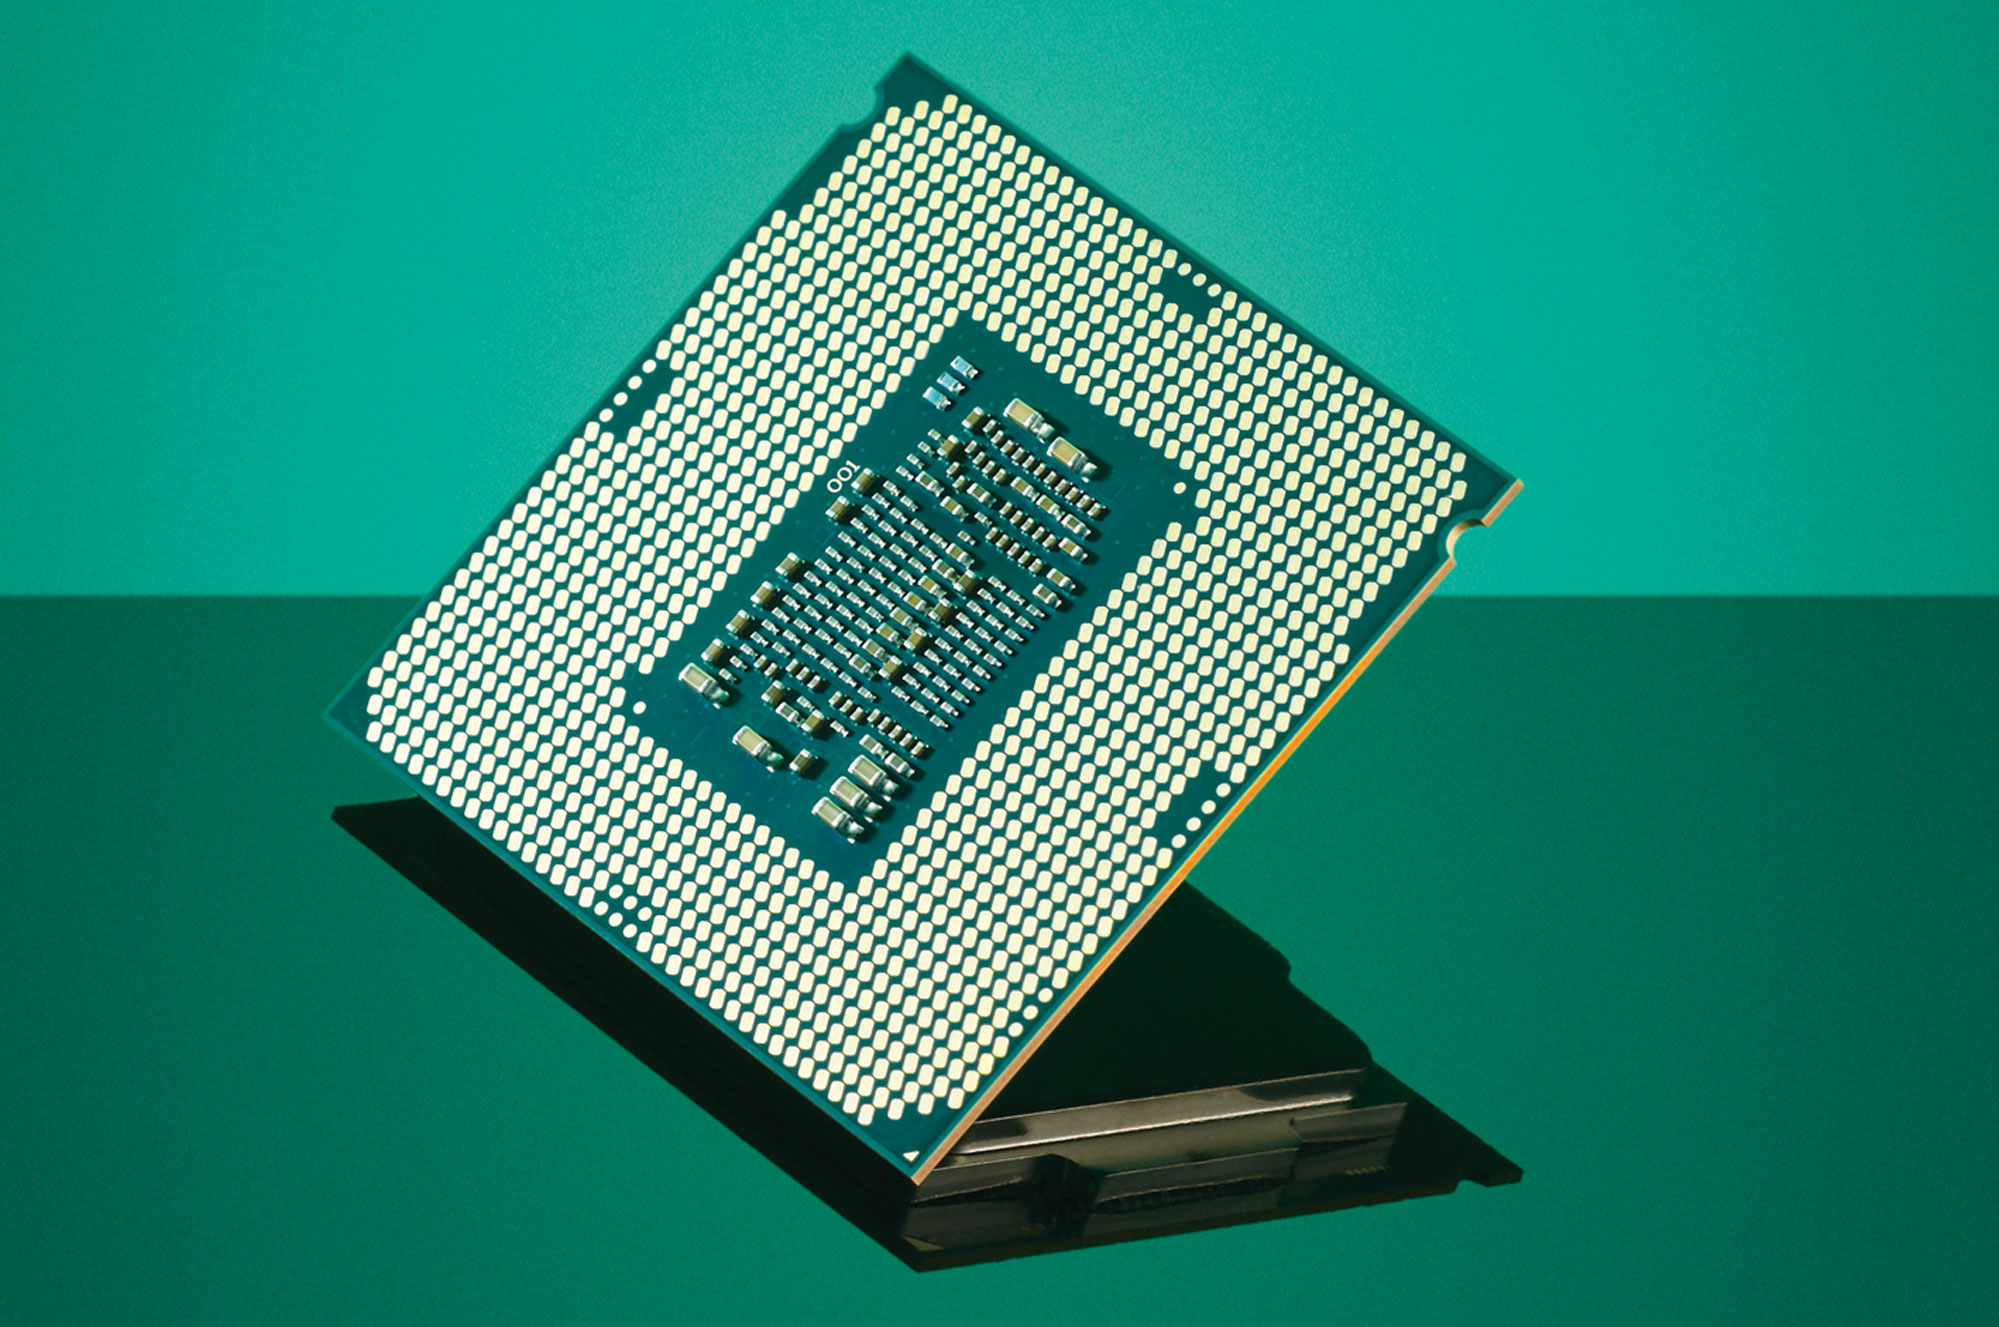 Intel Core i5-7600K [TEST]: Stærk gaming-processor til fin pris